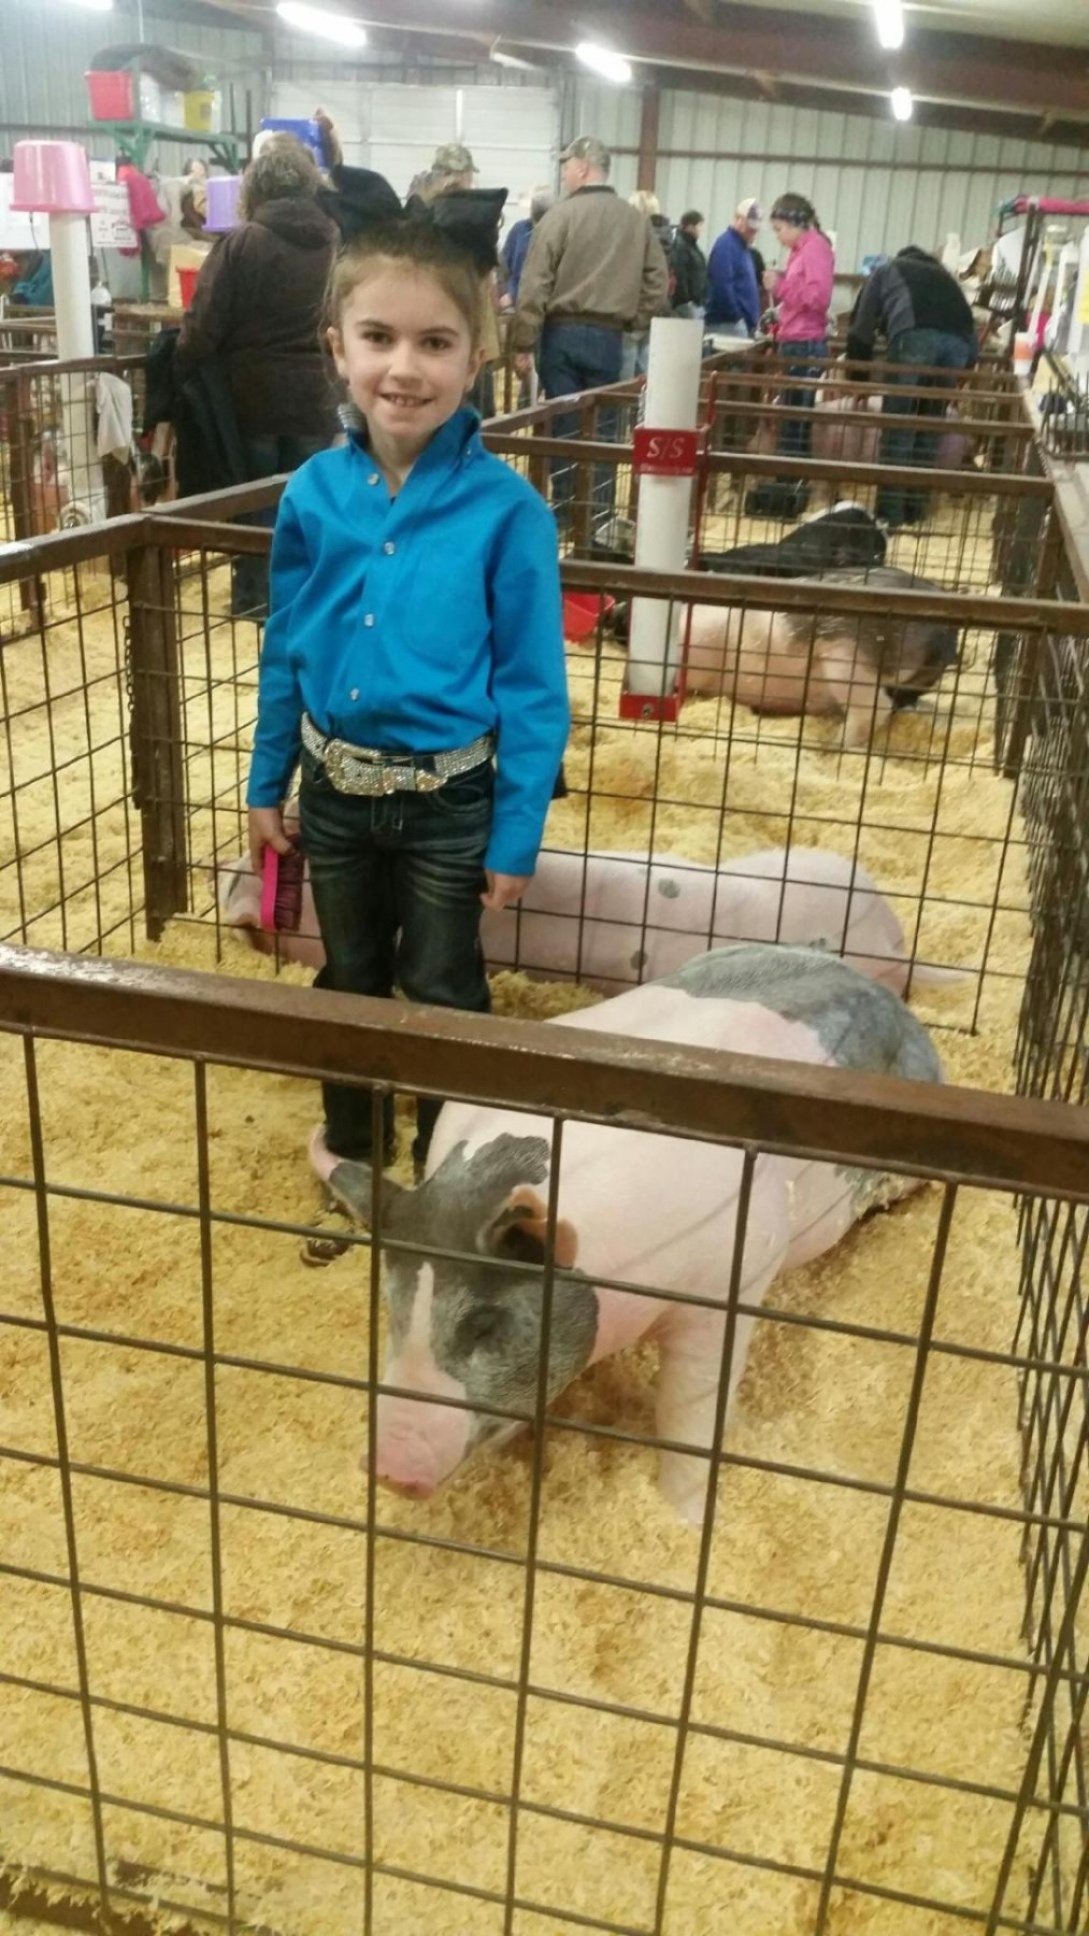 Lexi Nelms won a 2nd and 3rd with her hog this year, and won showmanship in her division. Maci Ellen, her friend who sent the photo in, said she wanted to say congrats to Nelms after all her hard work.